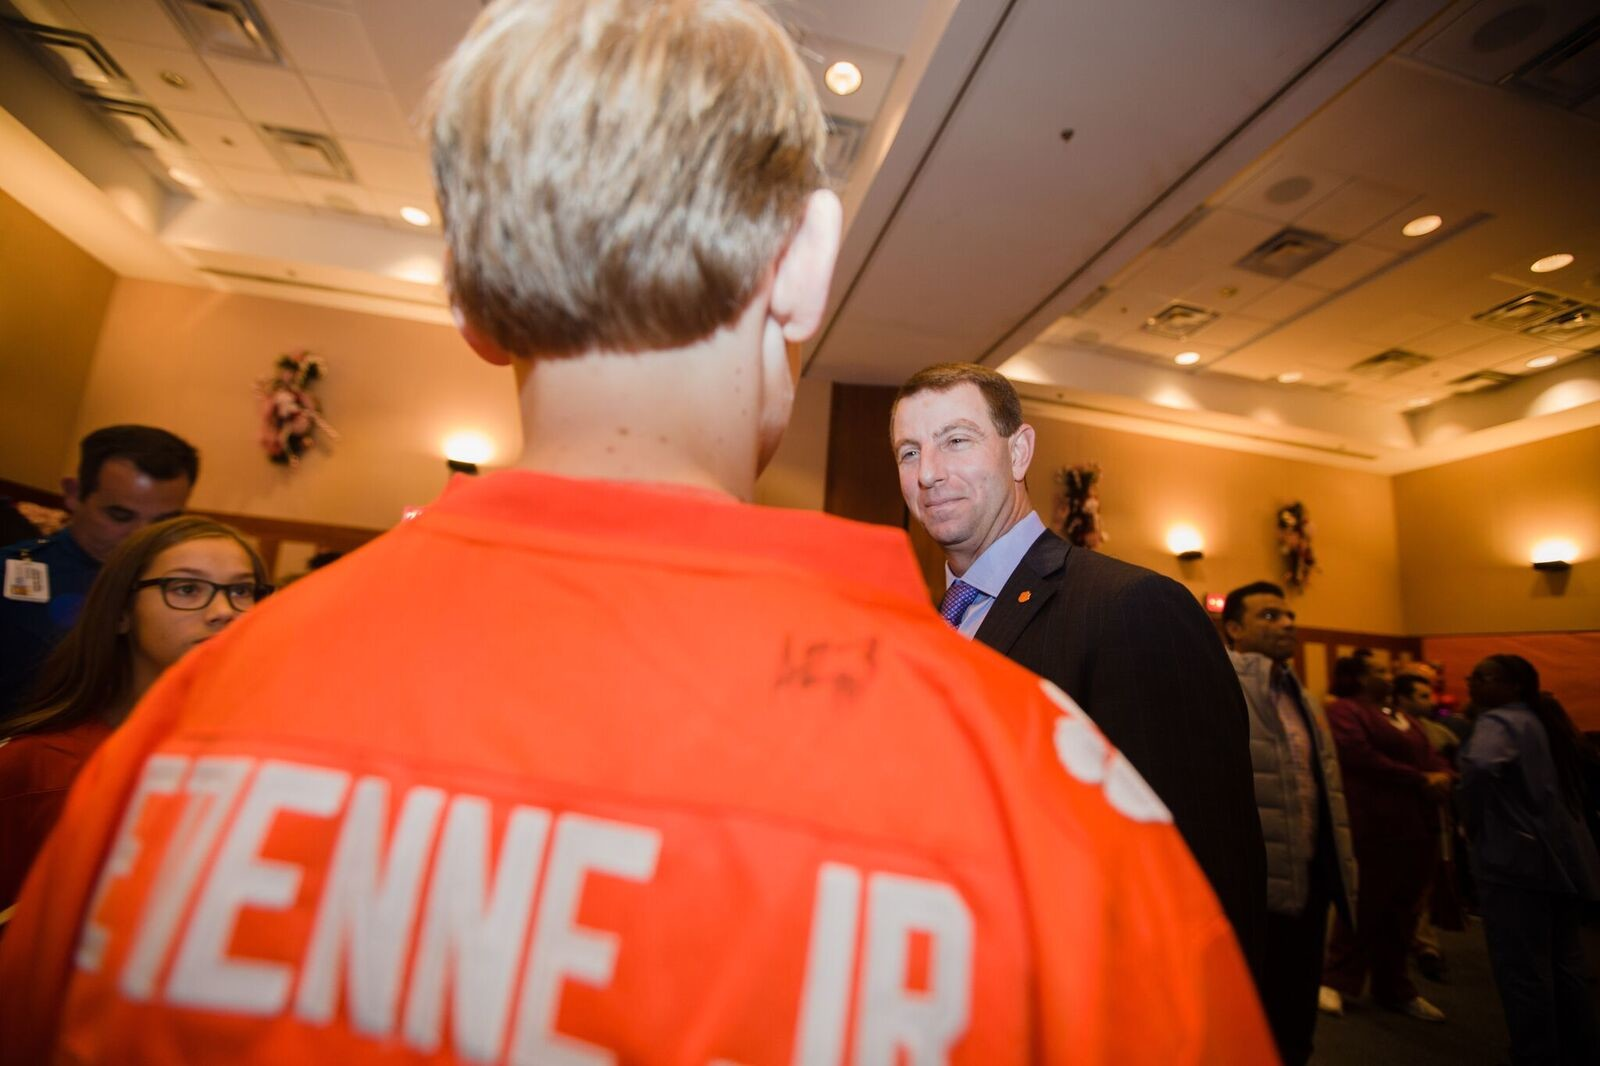 Clemson head coach Dabo Swinney interacts with attendees at a part thrown for the team and patients at Ochsner Baptist Children's Hospital in New Orleans on Saturday.